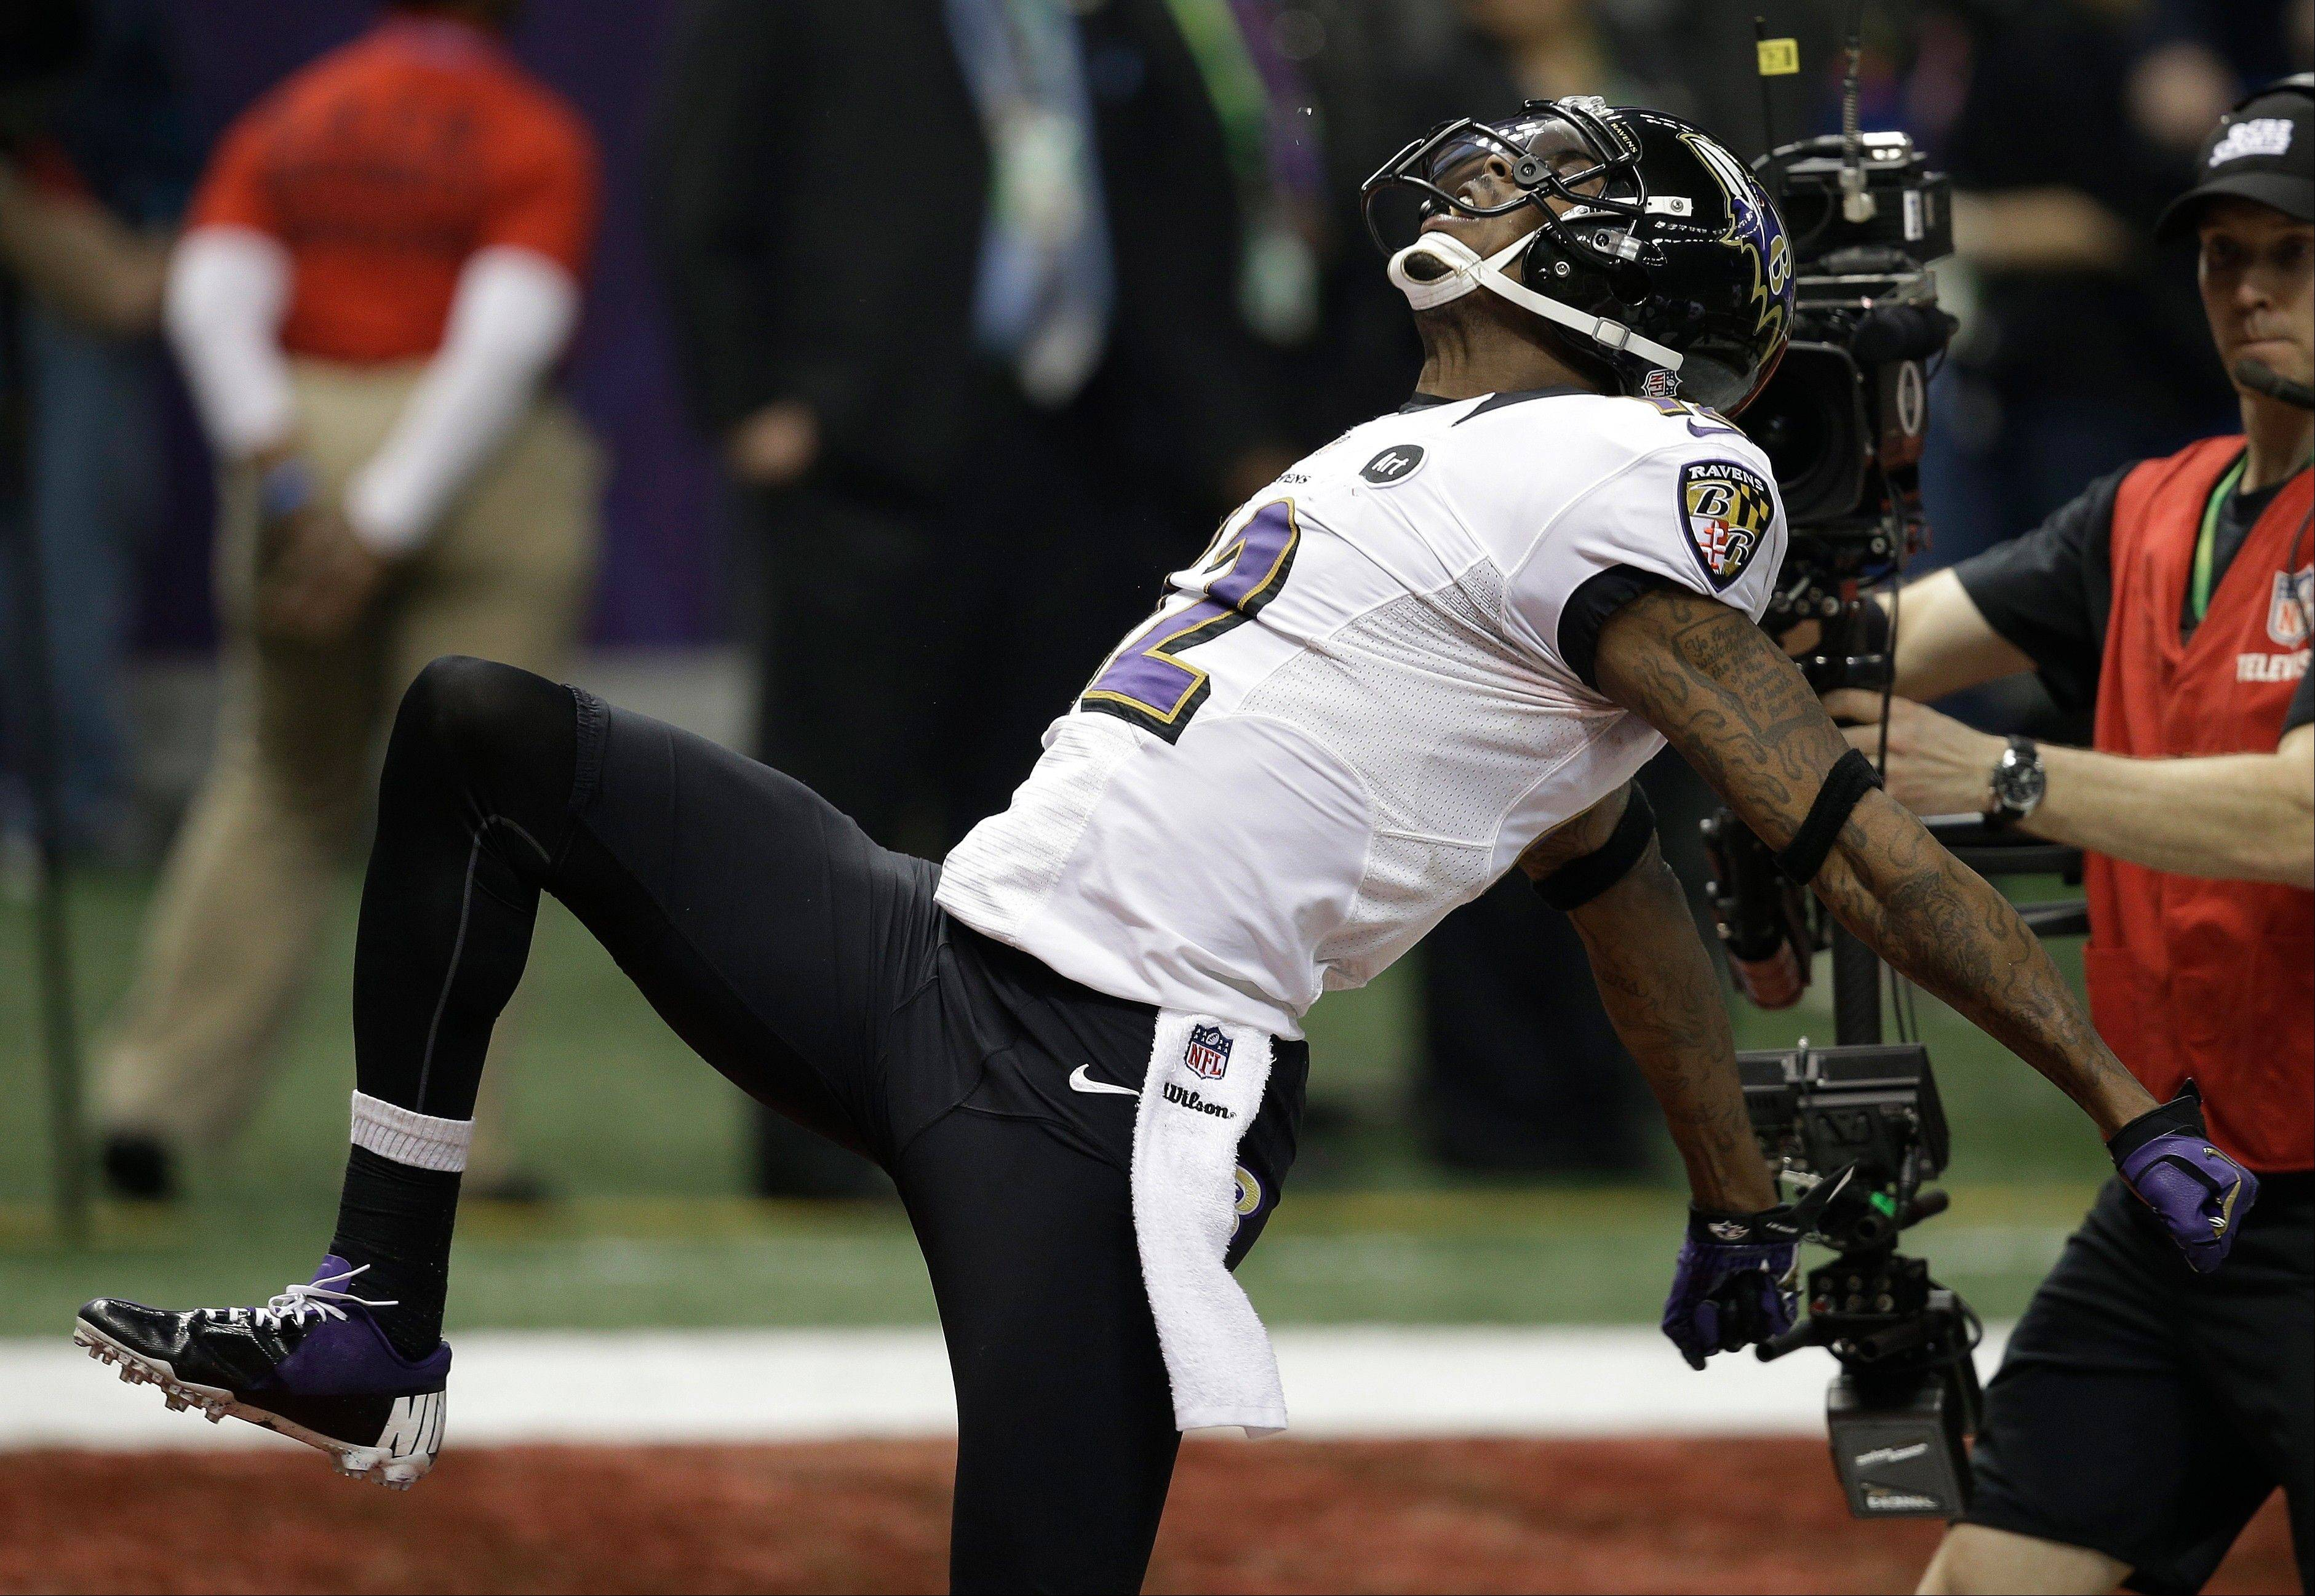 Baltimore Ravens wide receiver Jacoby Jones celebrates after returning a kickoff for a 108-yard touchdown against the San Francisco 49ers top open the second half of the Super Bowl on Sunday.